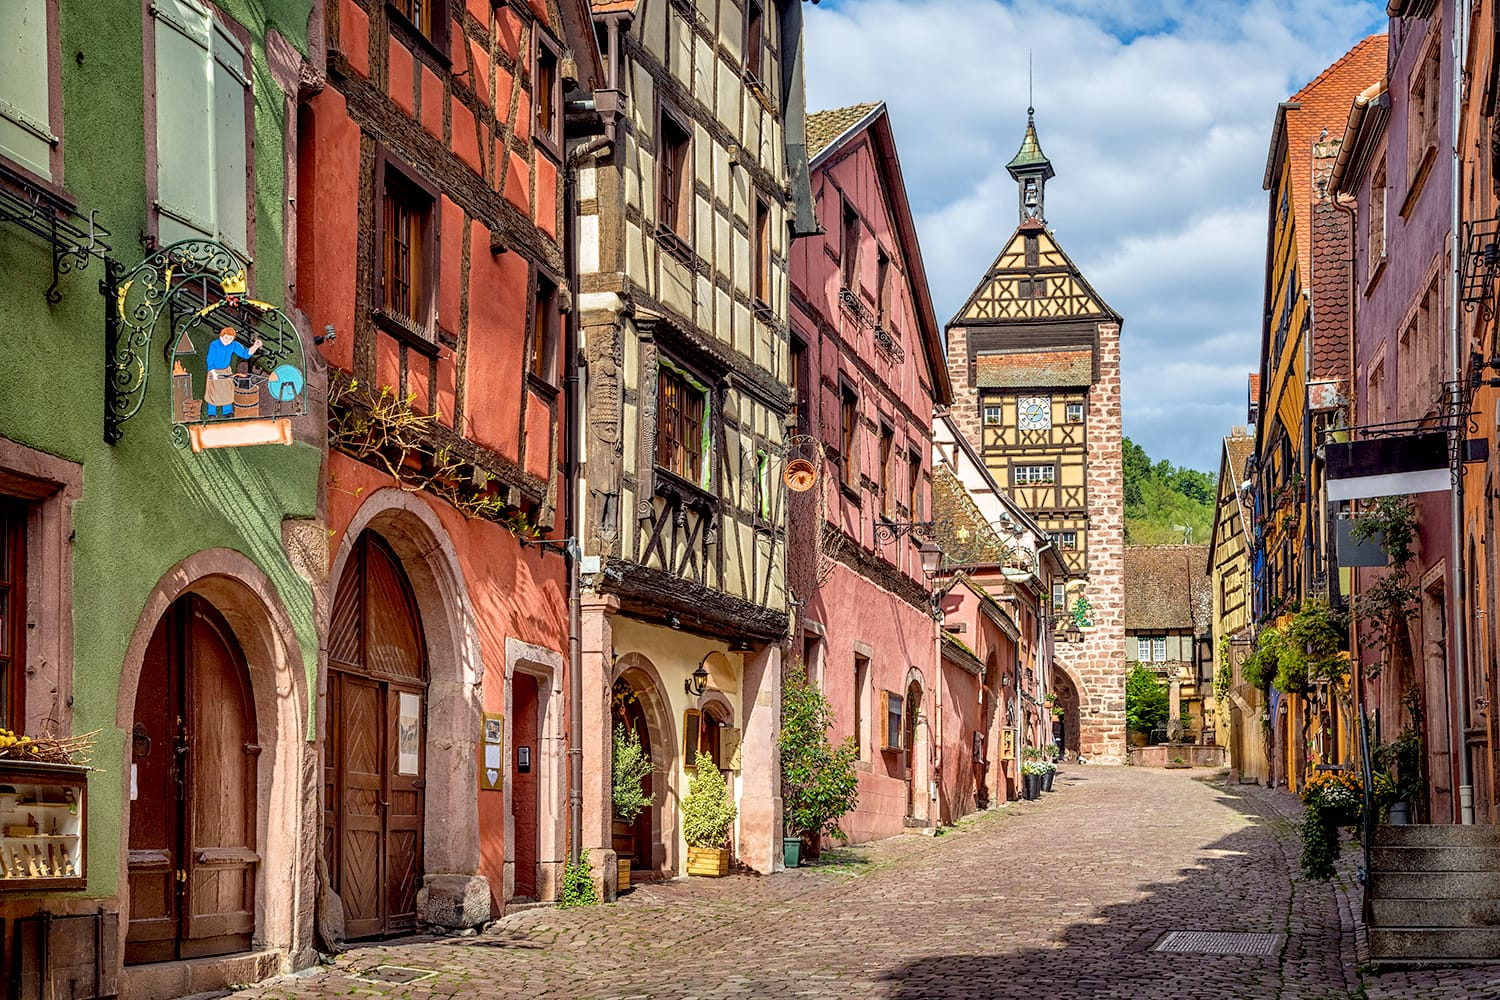 Central street of Riquewihr village with colorful traditional half-timbered french houses and Dolder Tower, Alsace, France